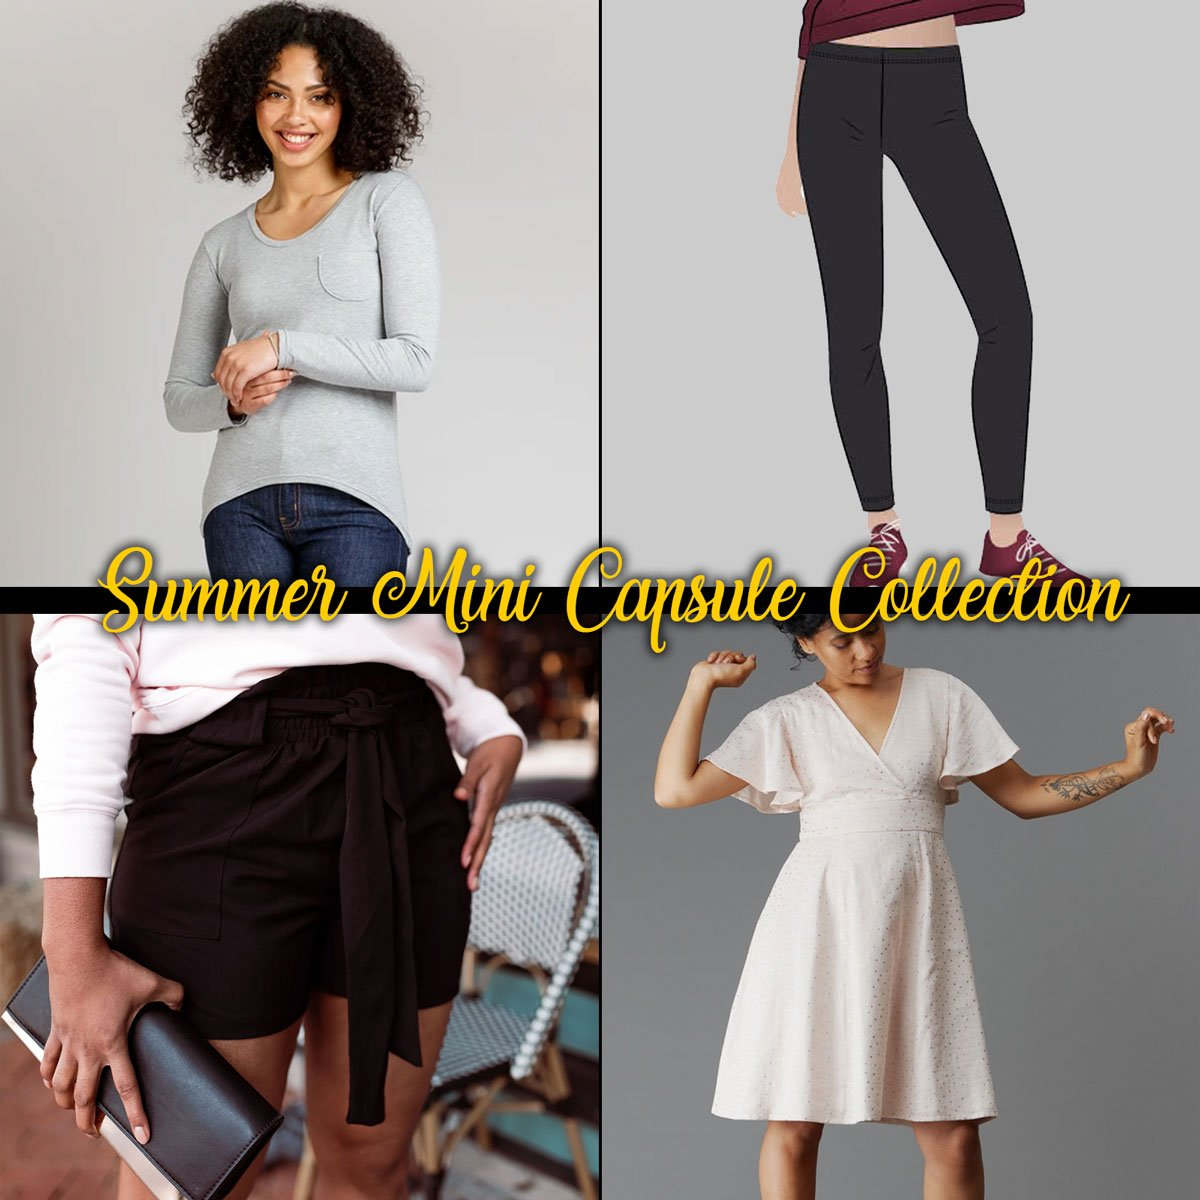 Summer Mini-Capsule Collection Subscription Program